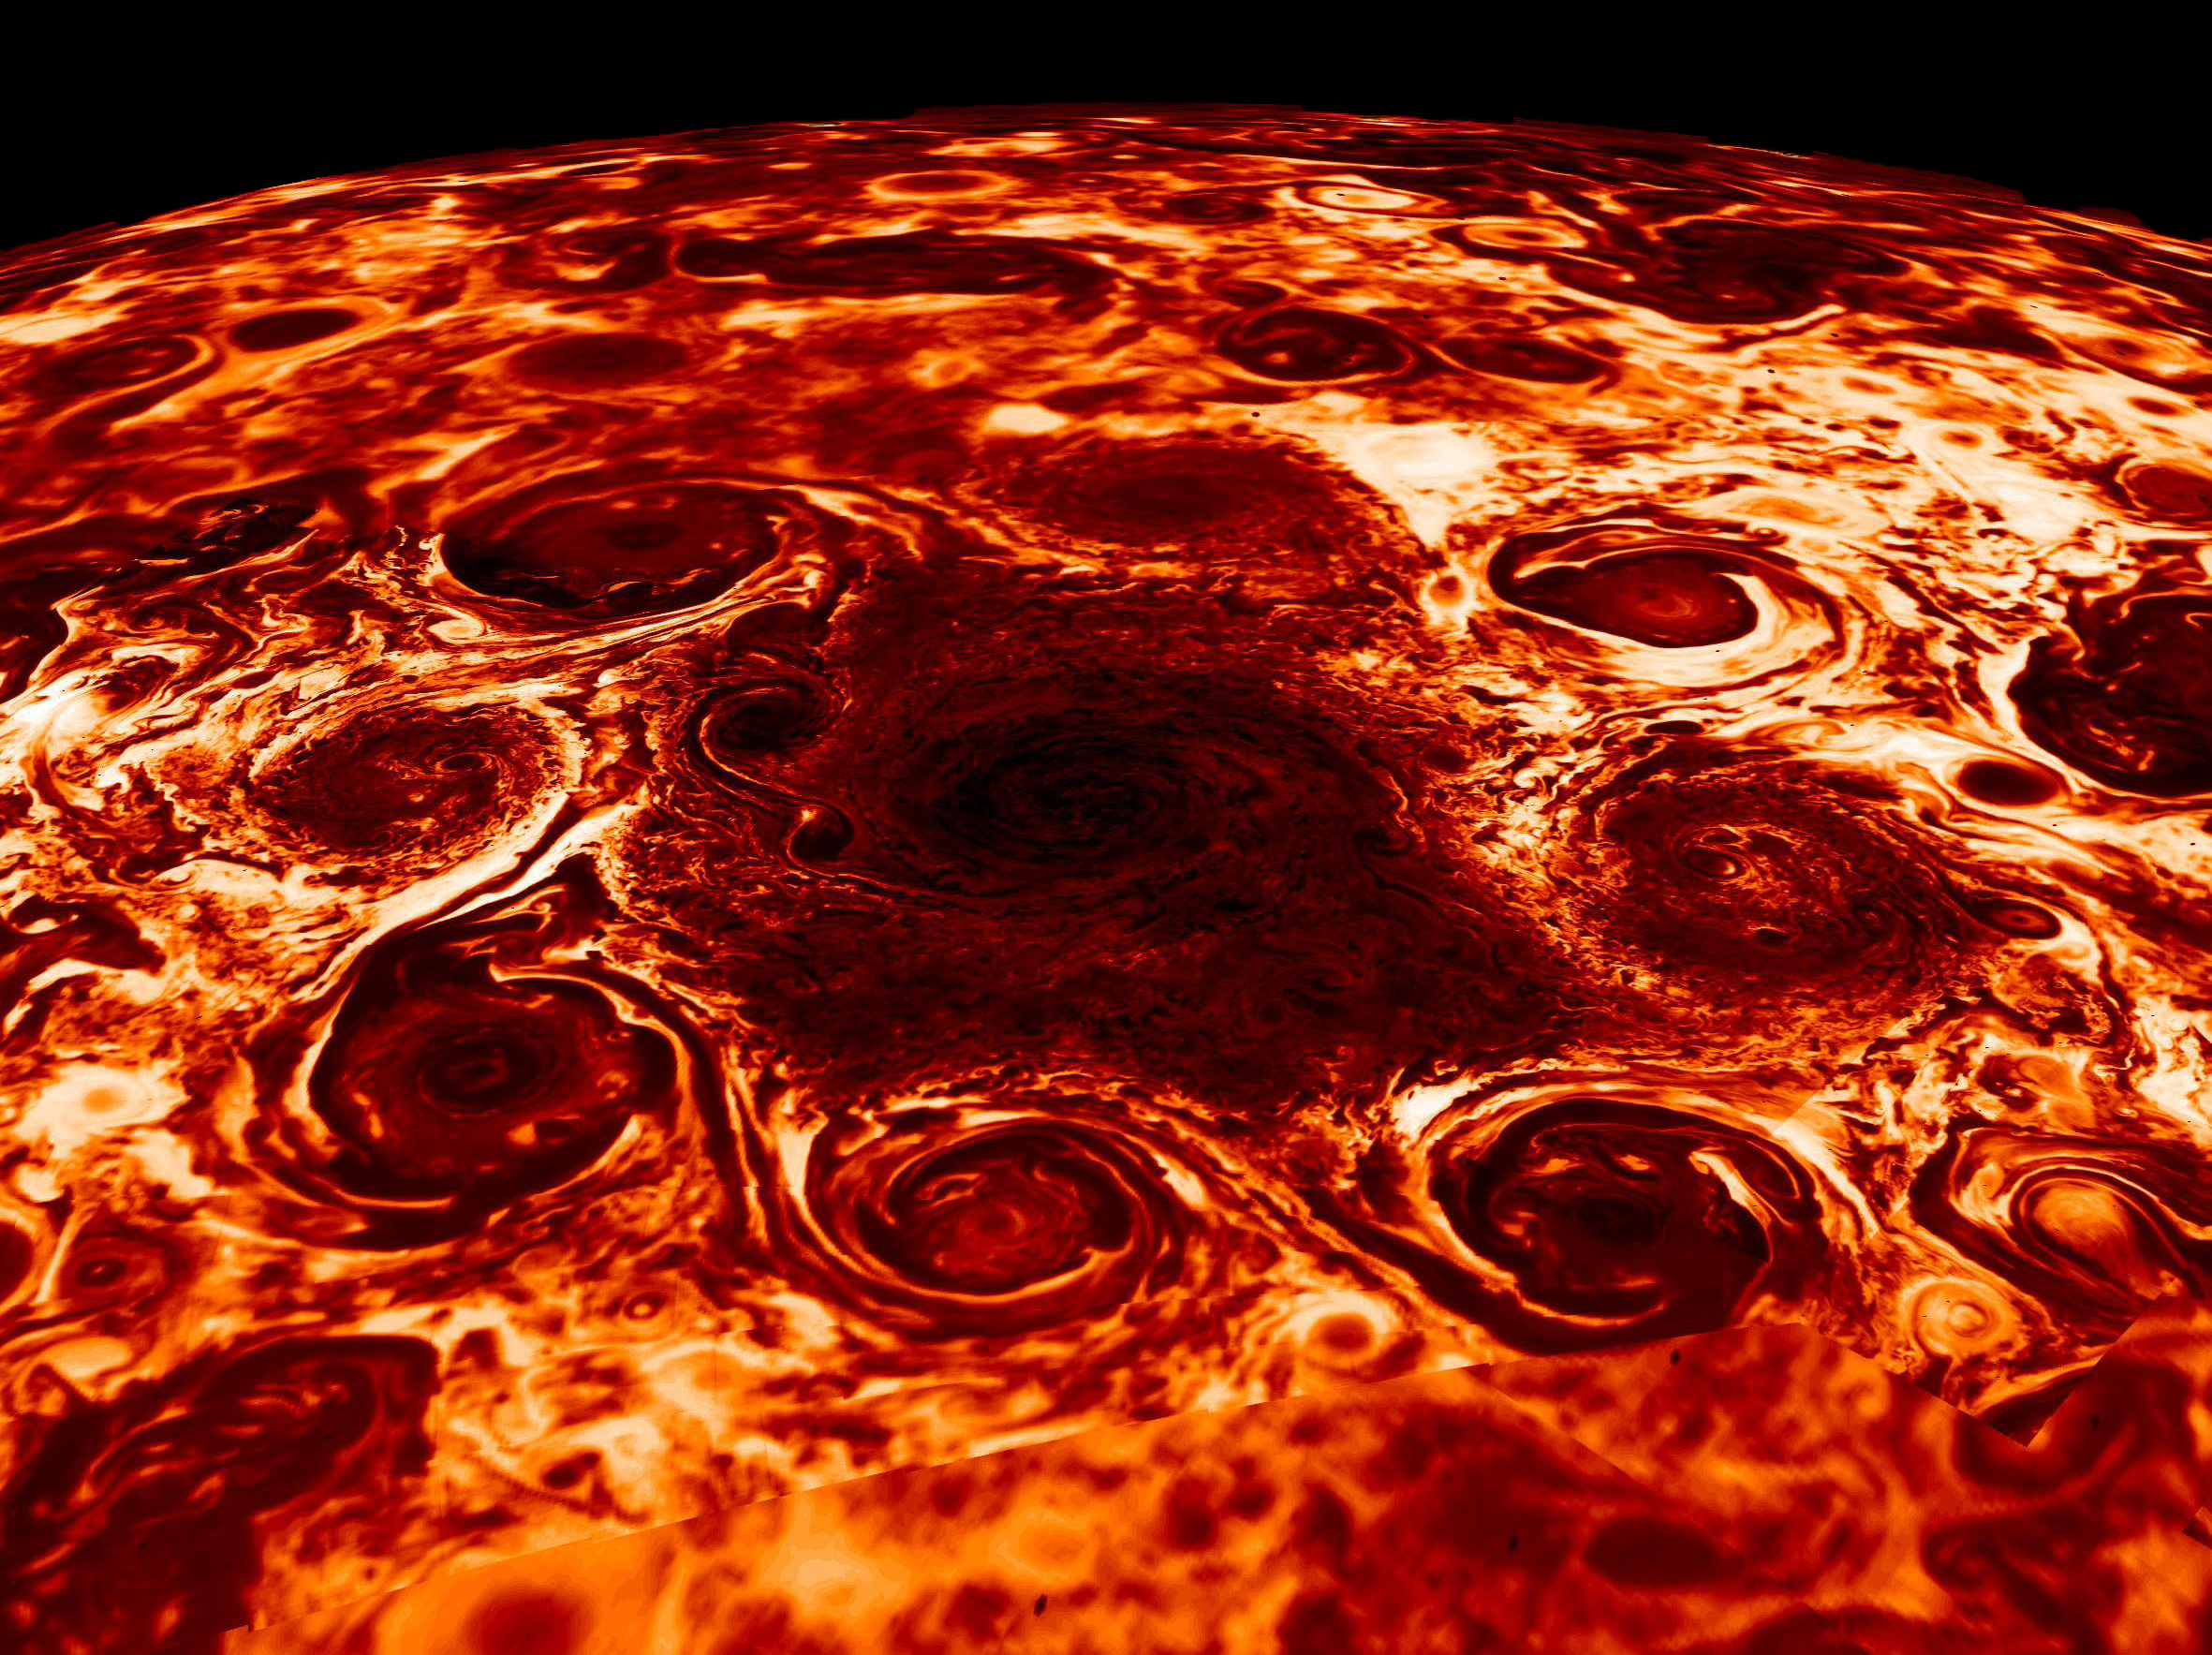 Jupiter North Pole Large Cyclone